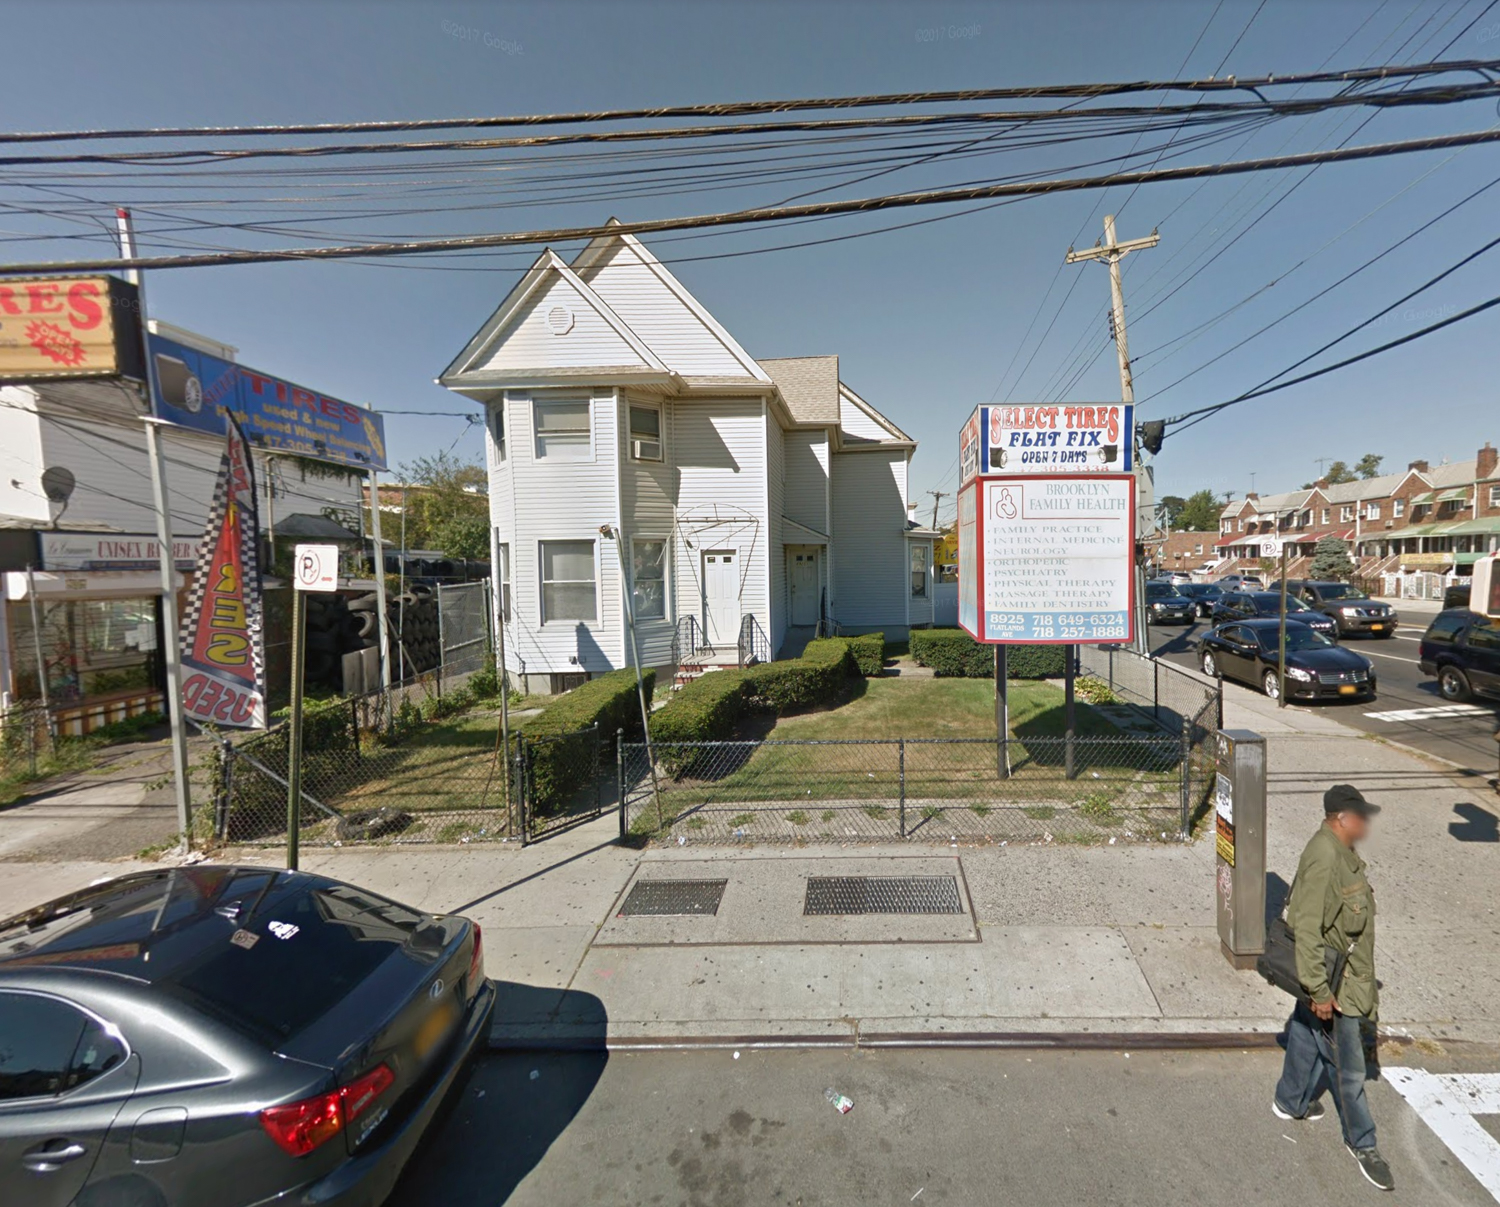 8923 Flatlands Avenue, via Google Maps